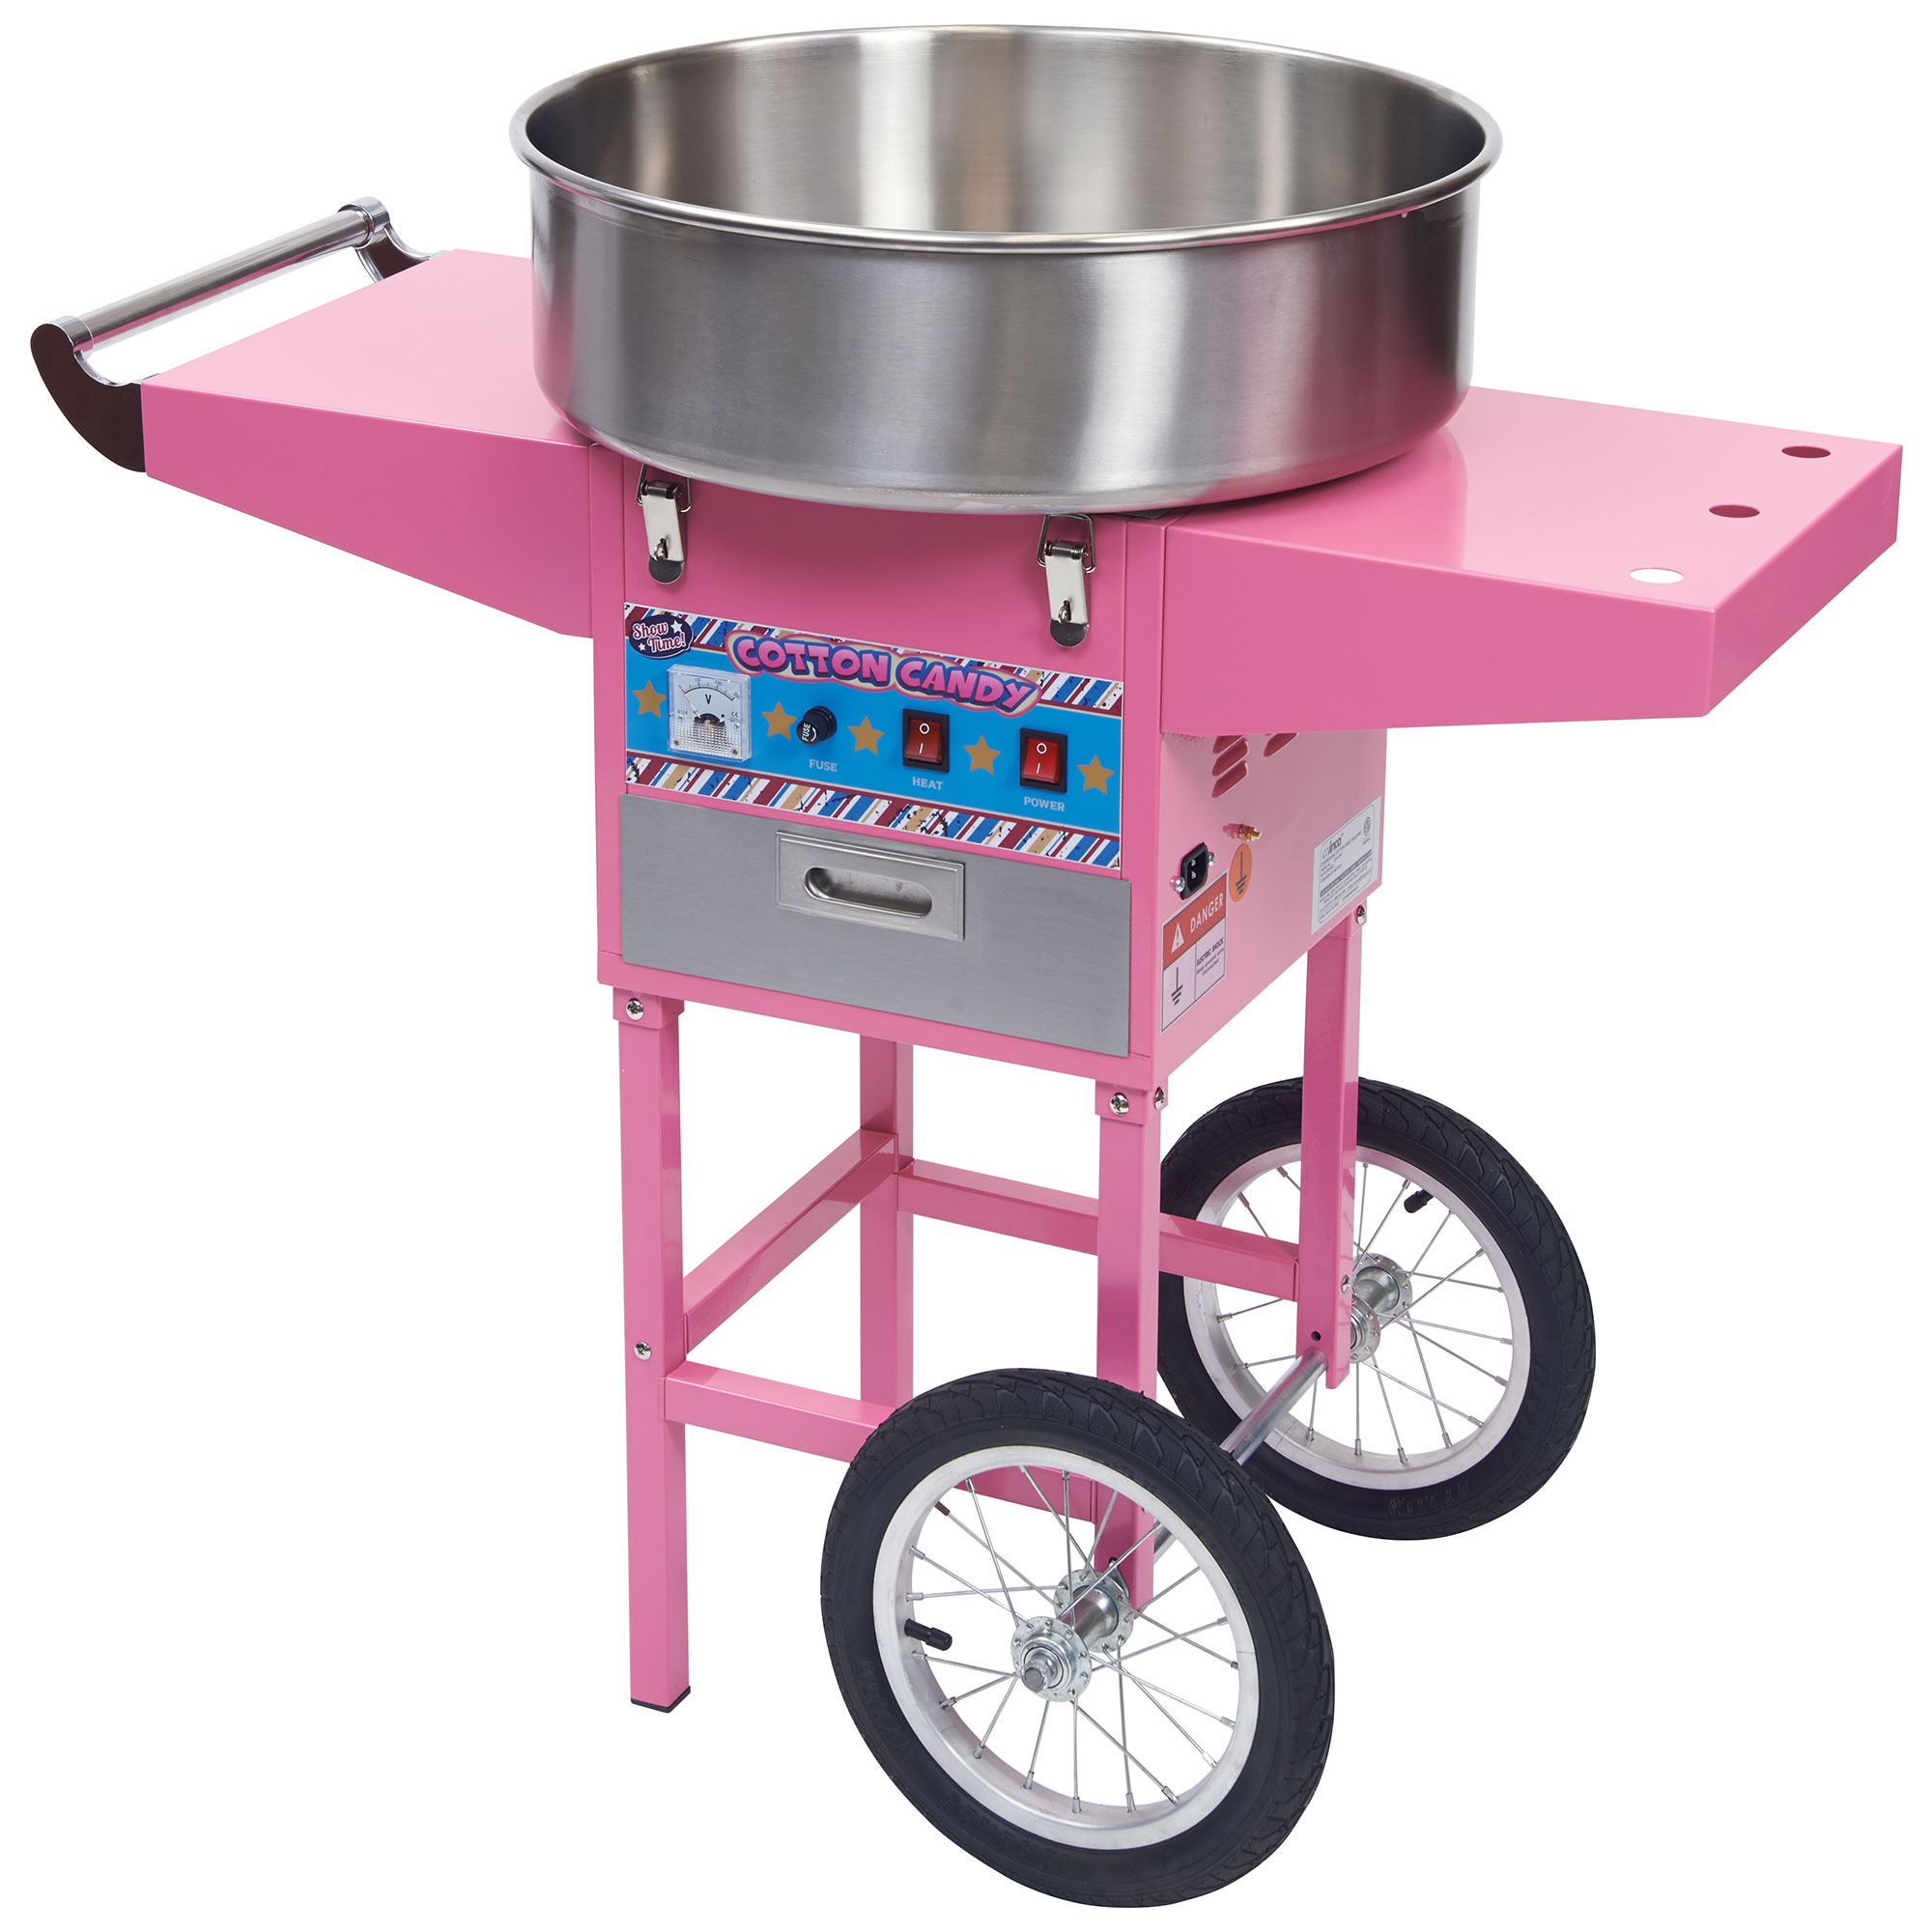 Winco CCM-28M cotton candy machine & display